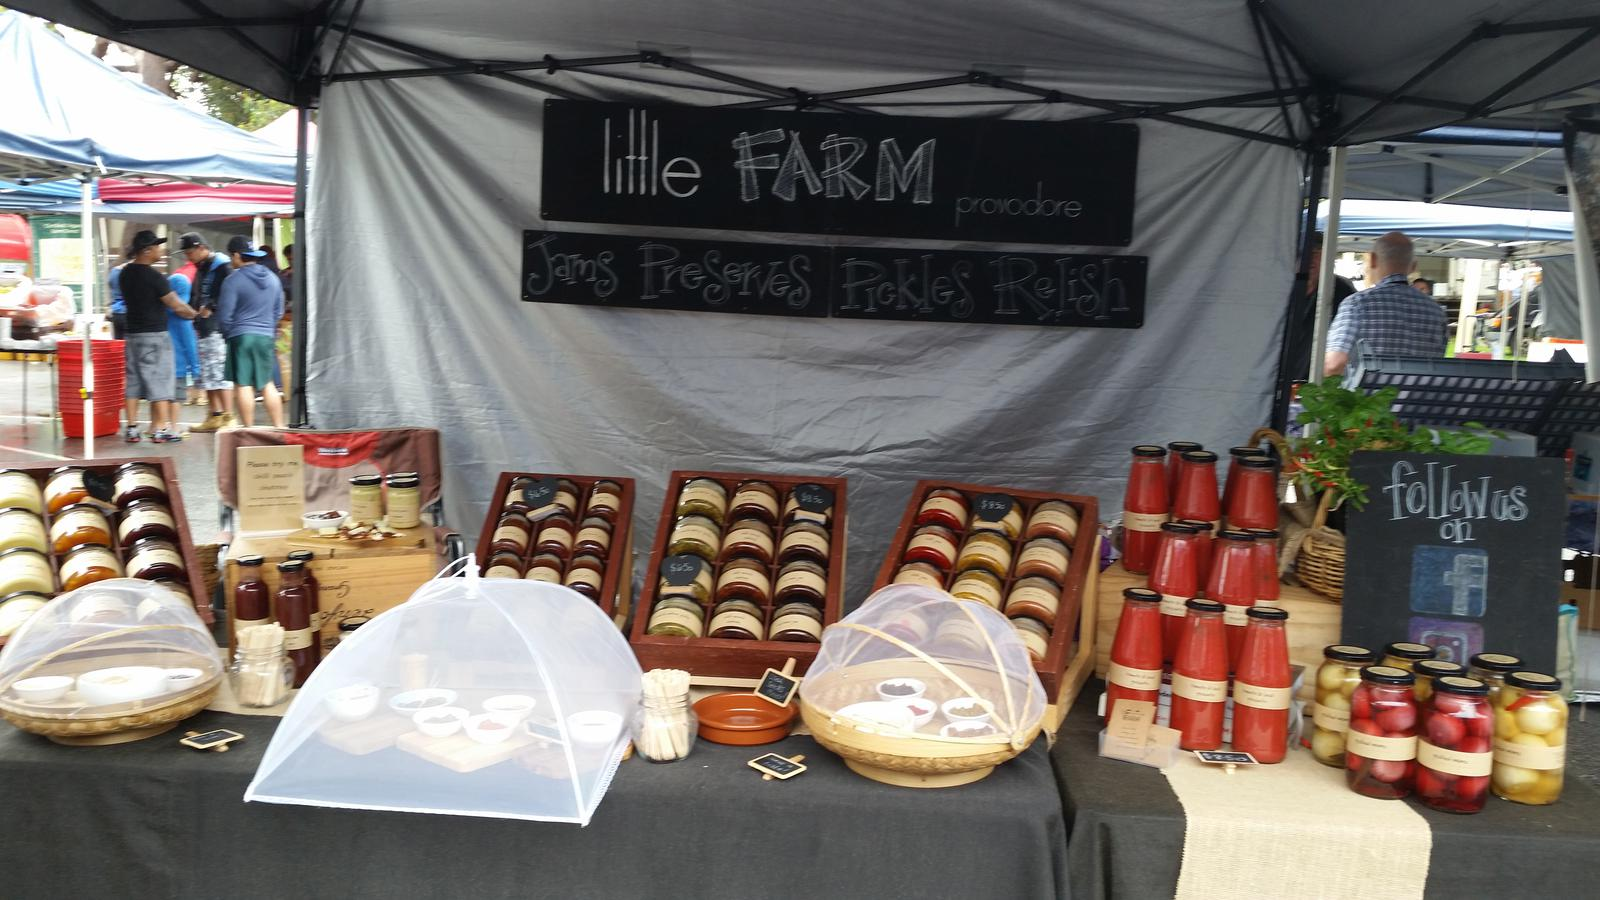 Little Farm Stall